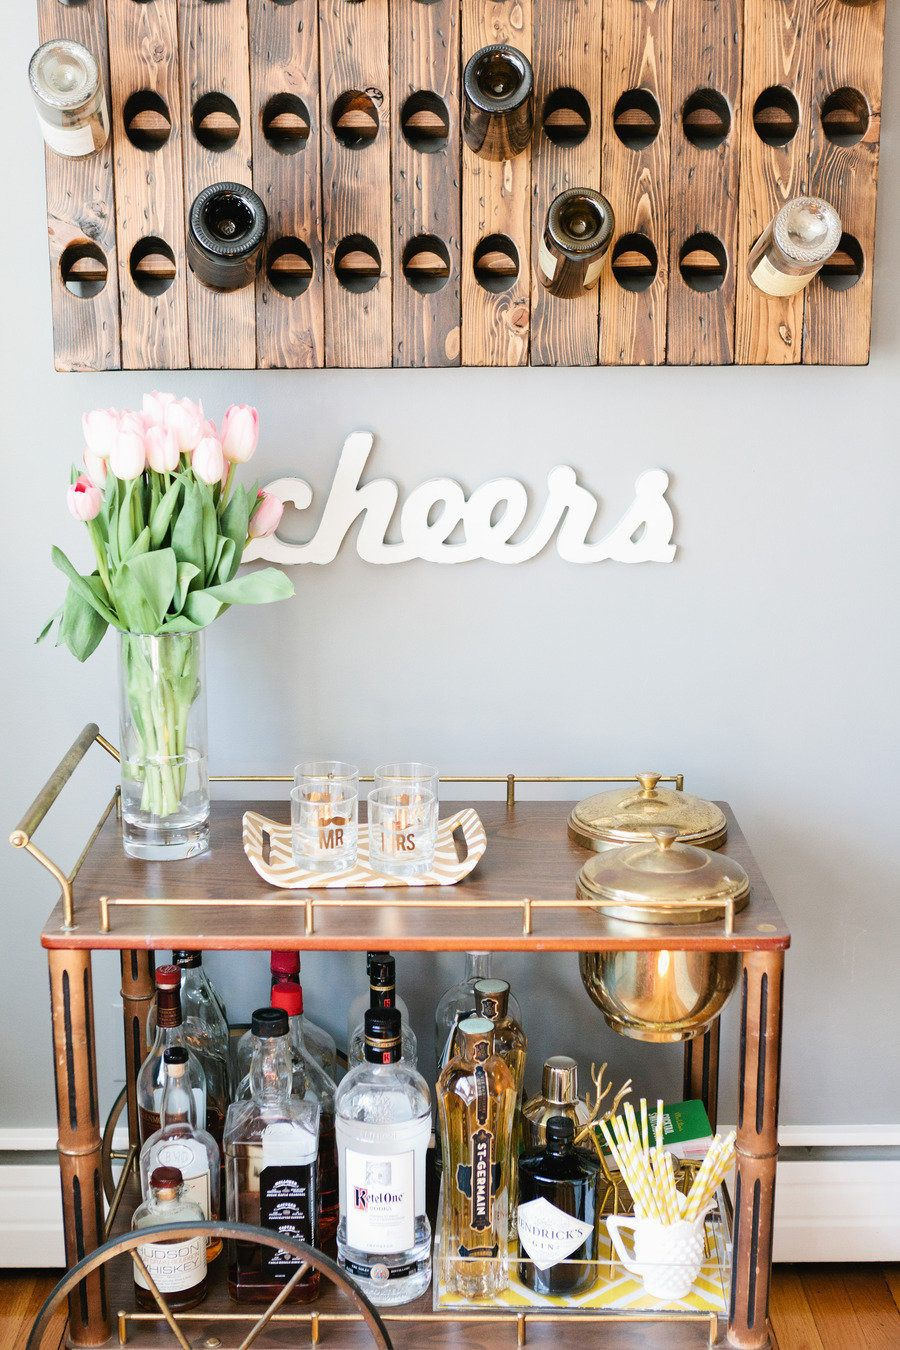 Home Bar Ideas That Don\'t Involve a Cart | Bar carts, Storage rack ...